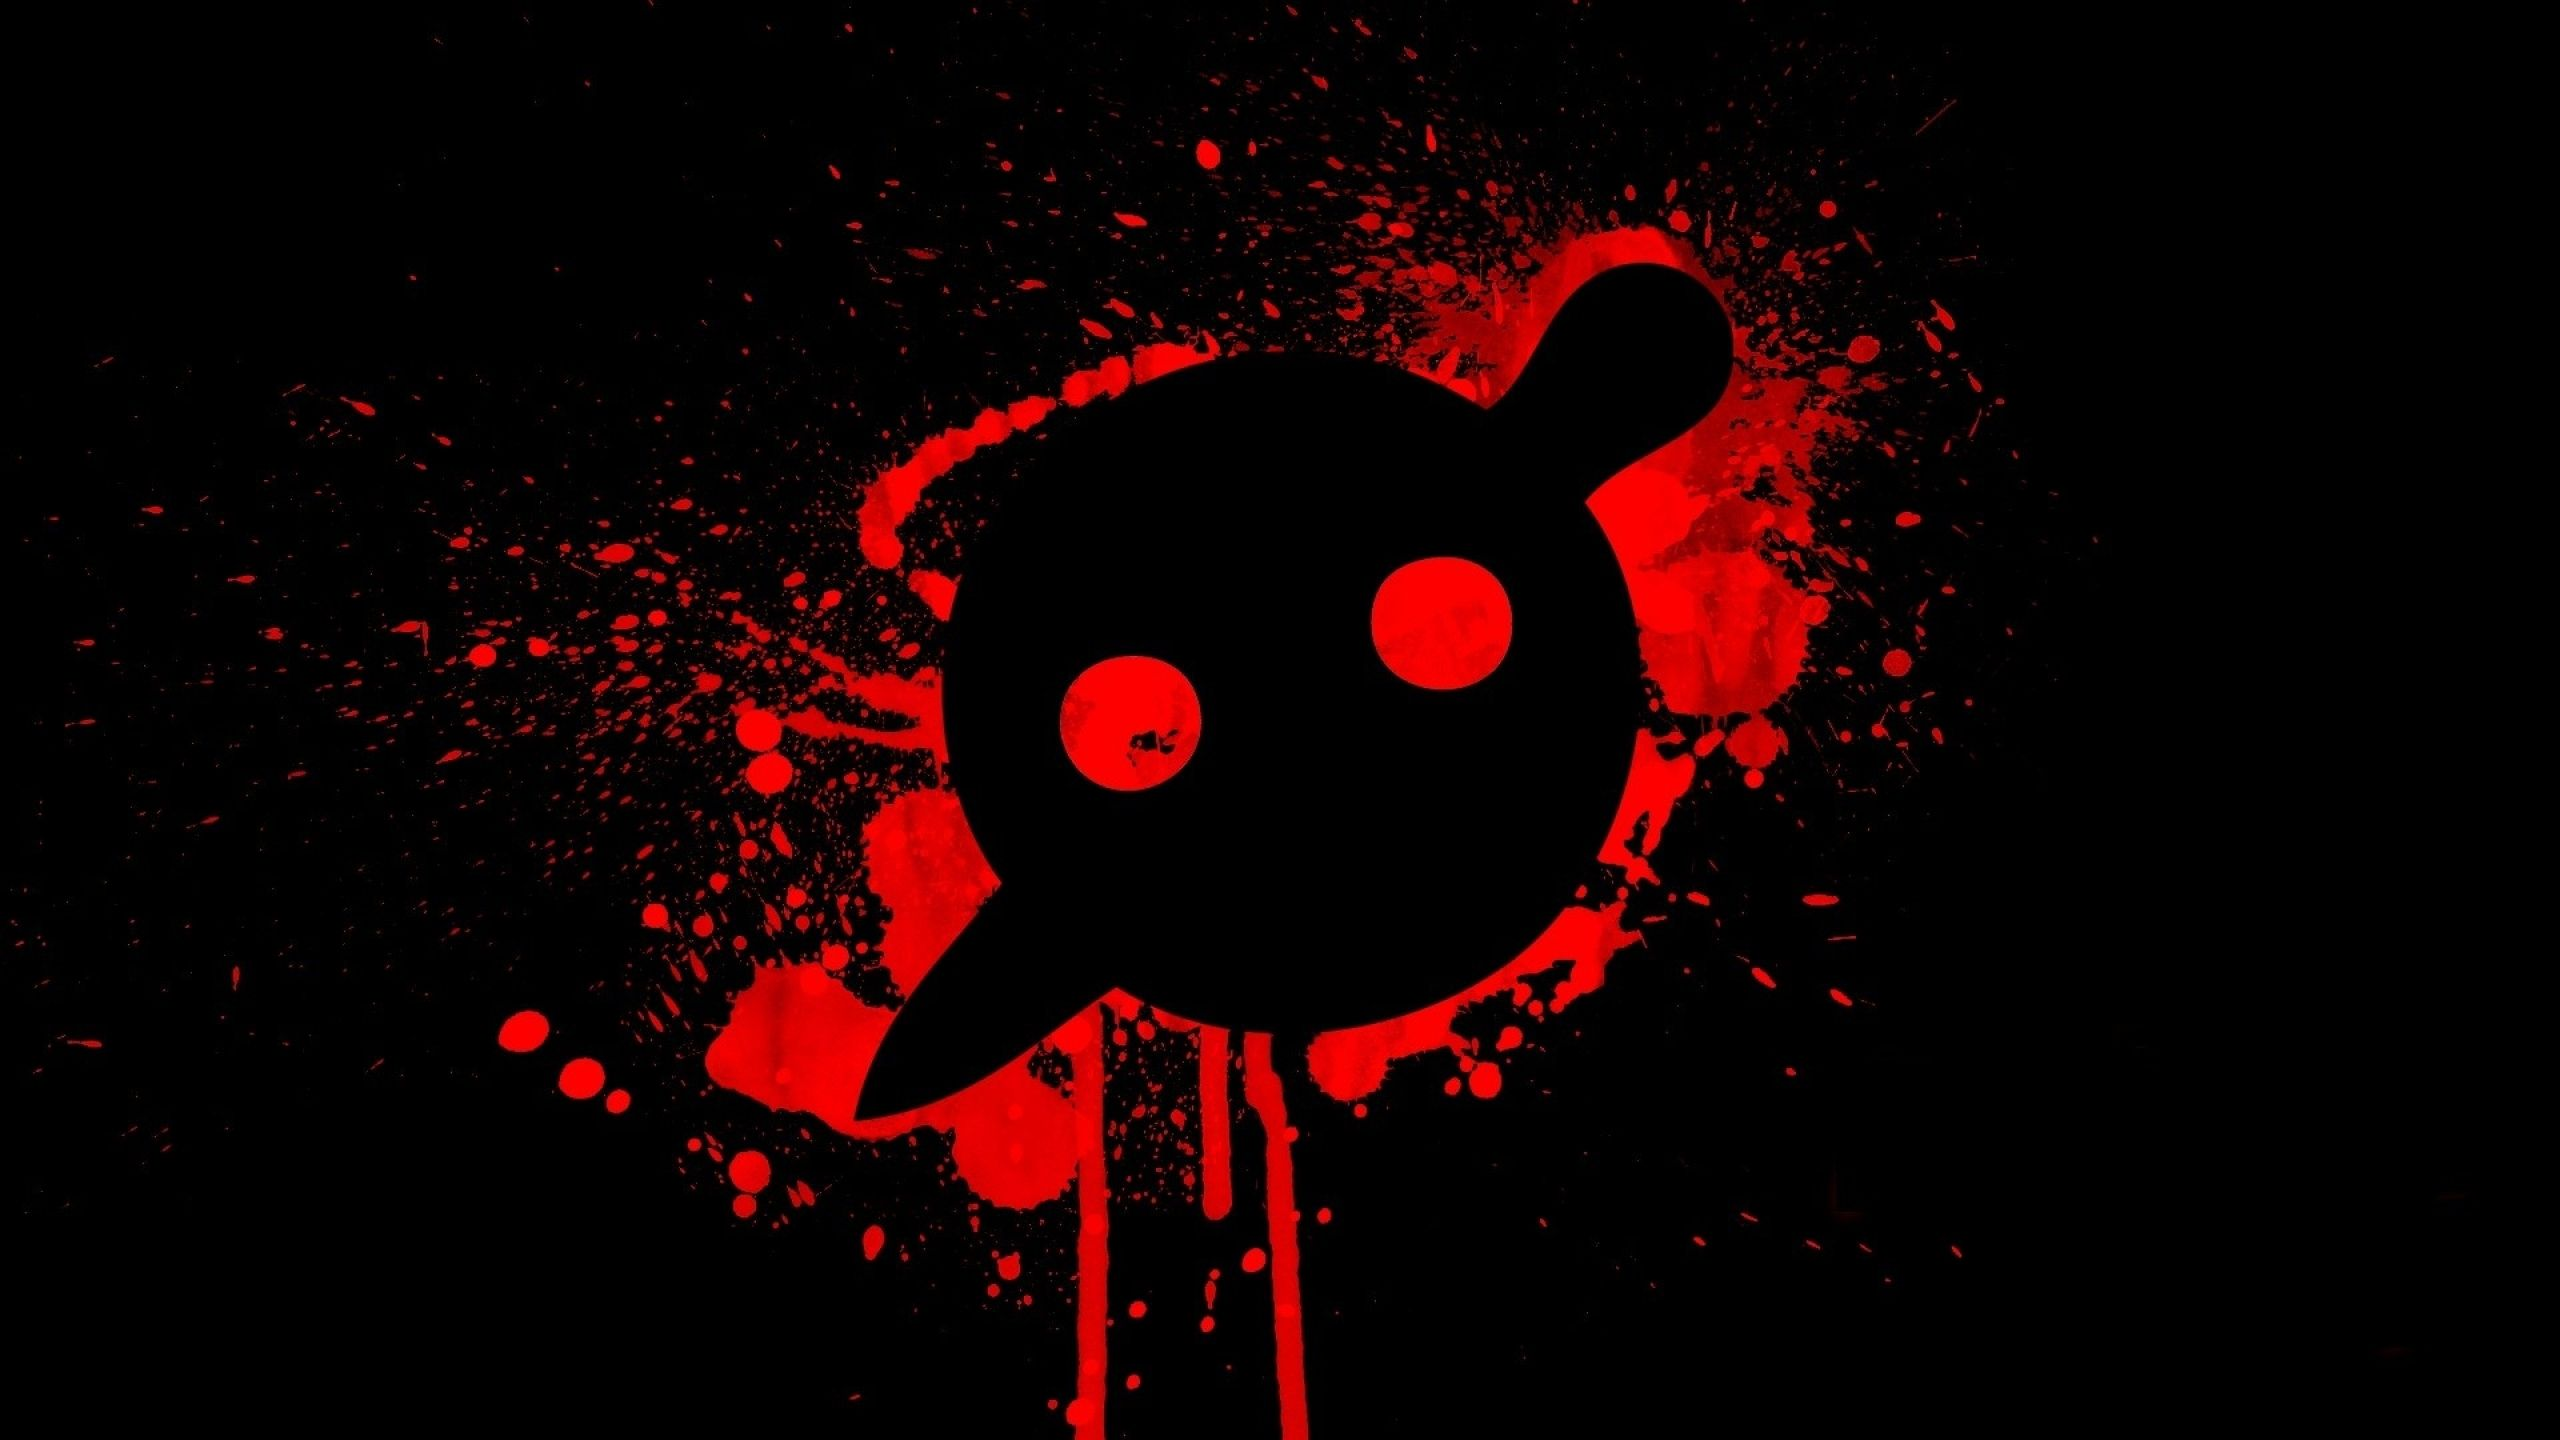 Download Wallpapers Download 2560x1440 Black Music Red Simple Animal Wallpaper Red Wallpaper Knife Party